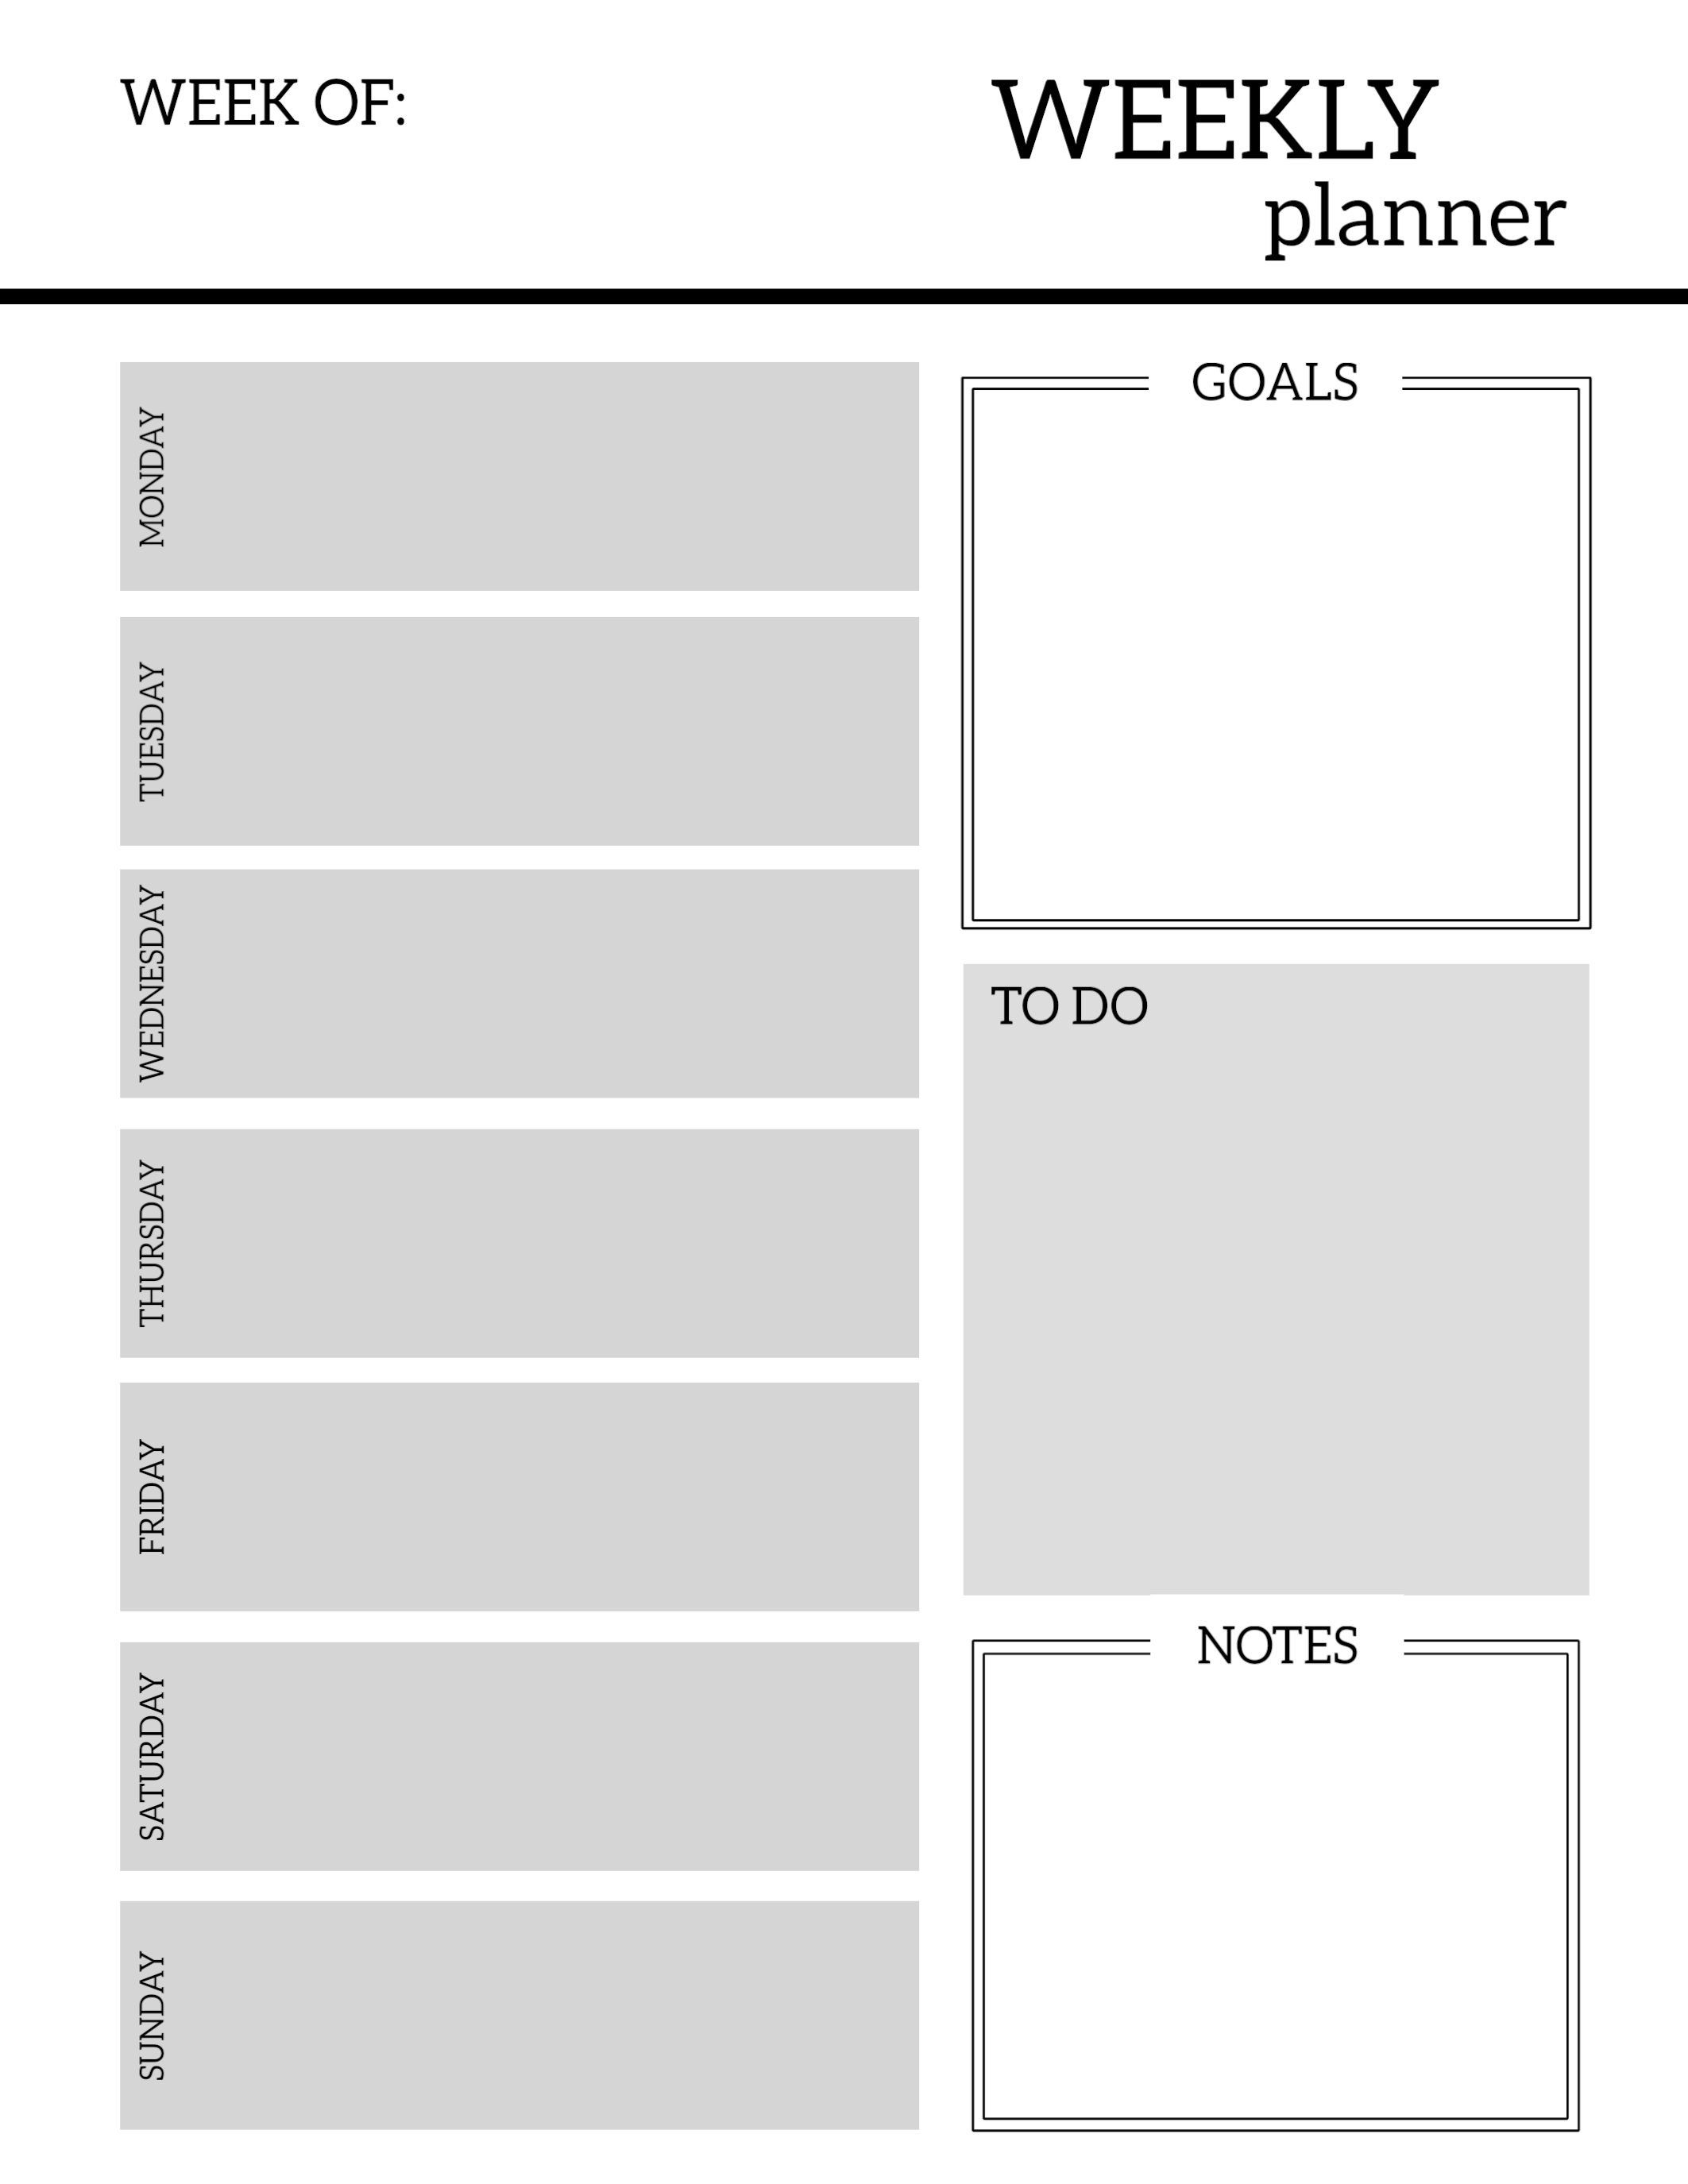 Free Printable Weekly Planner Pages - Paper Trail Design  Printable Weekly Planner For The Week